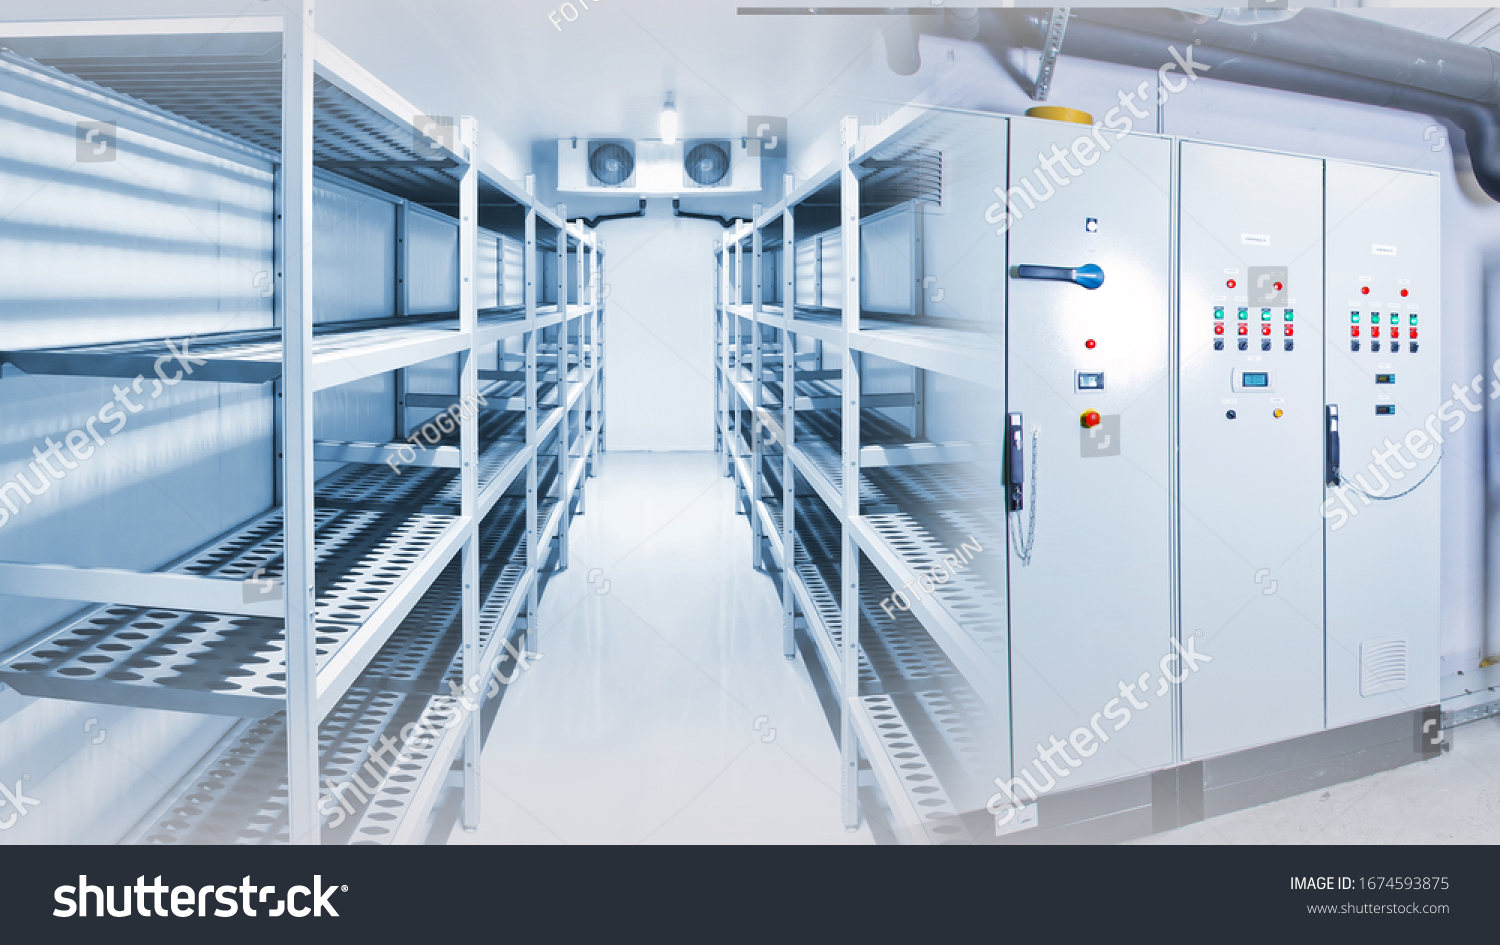 Refrigeration chamber for food storage #1674593875